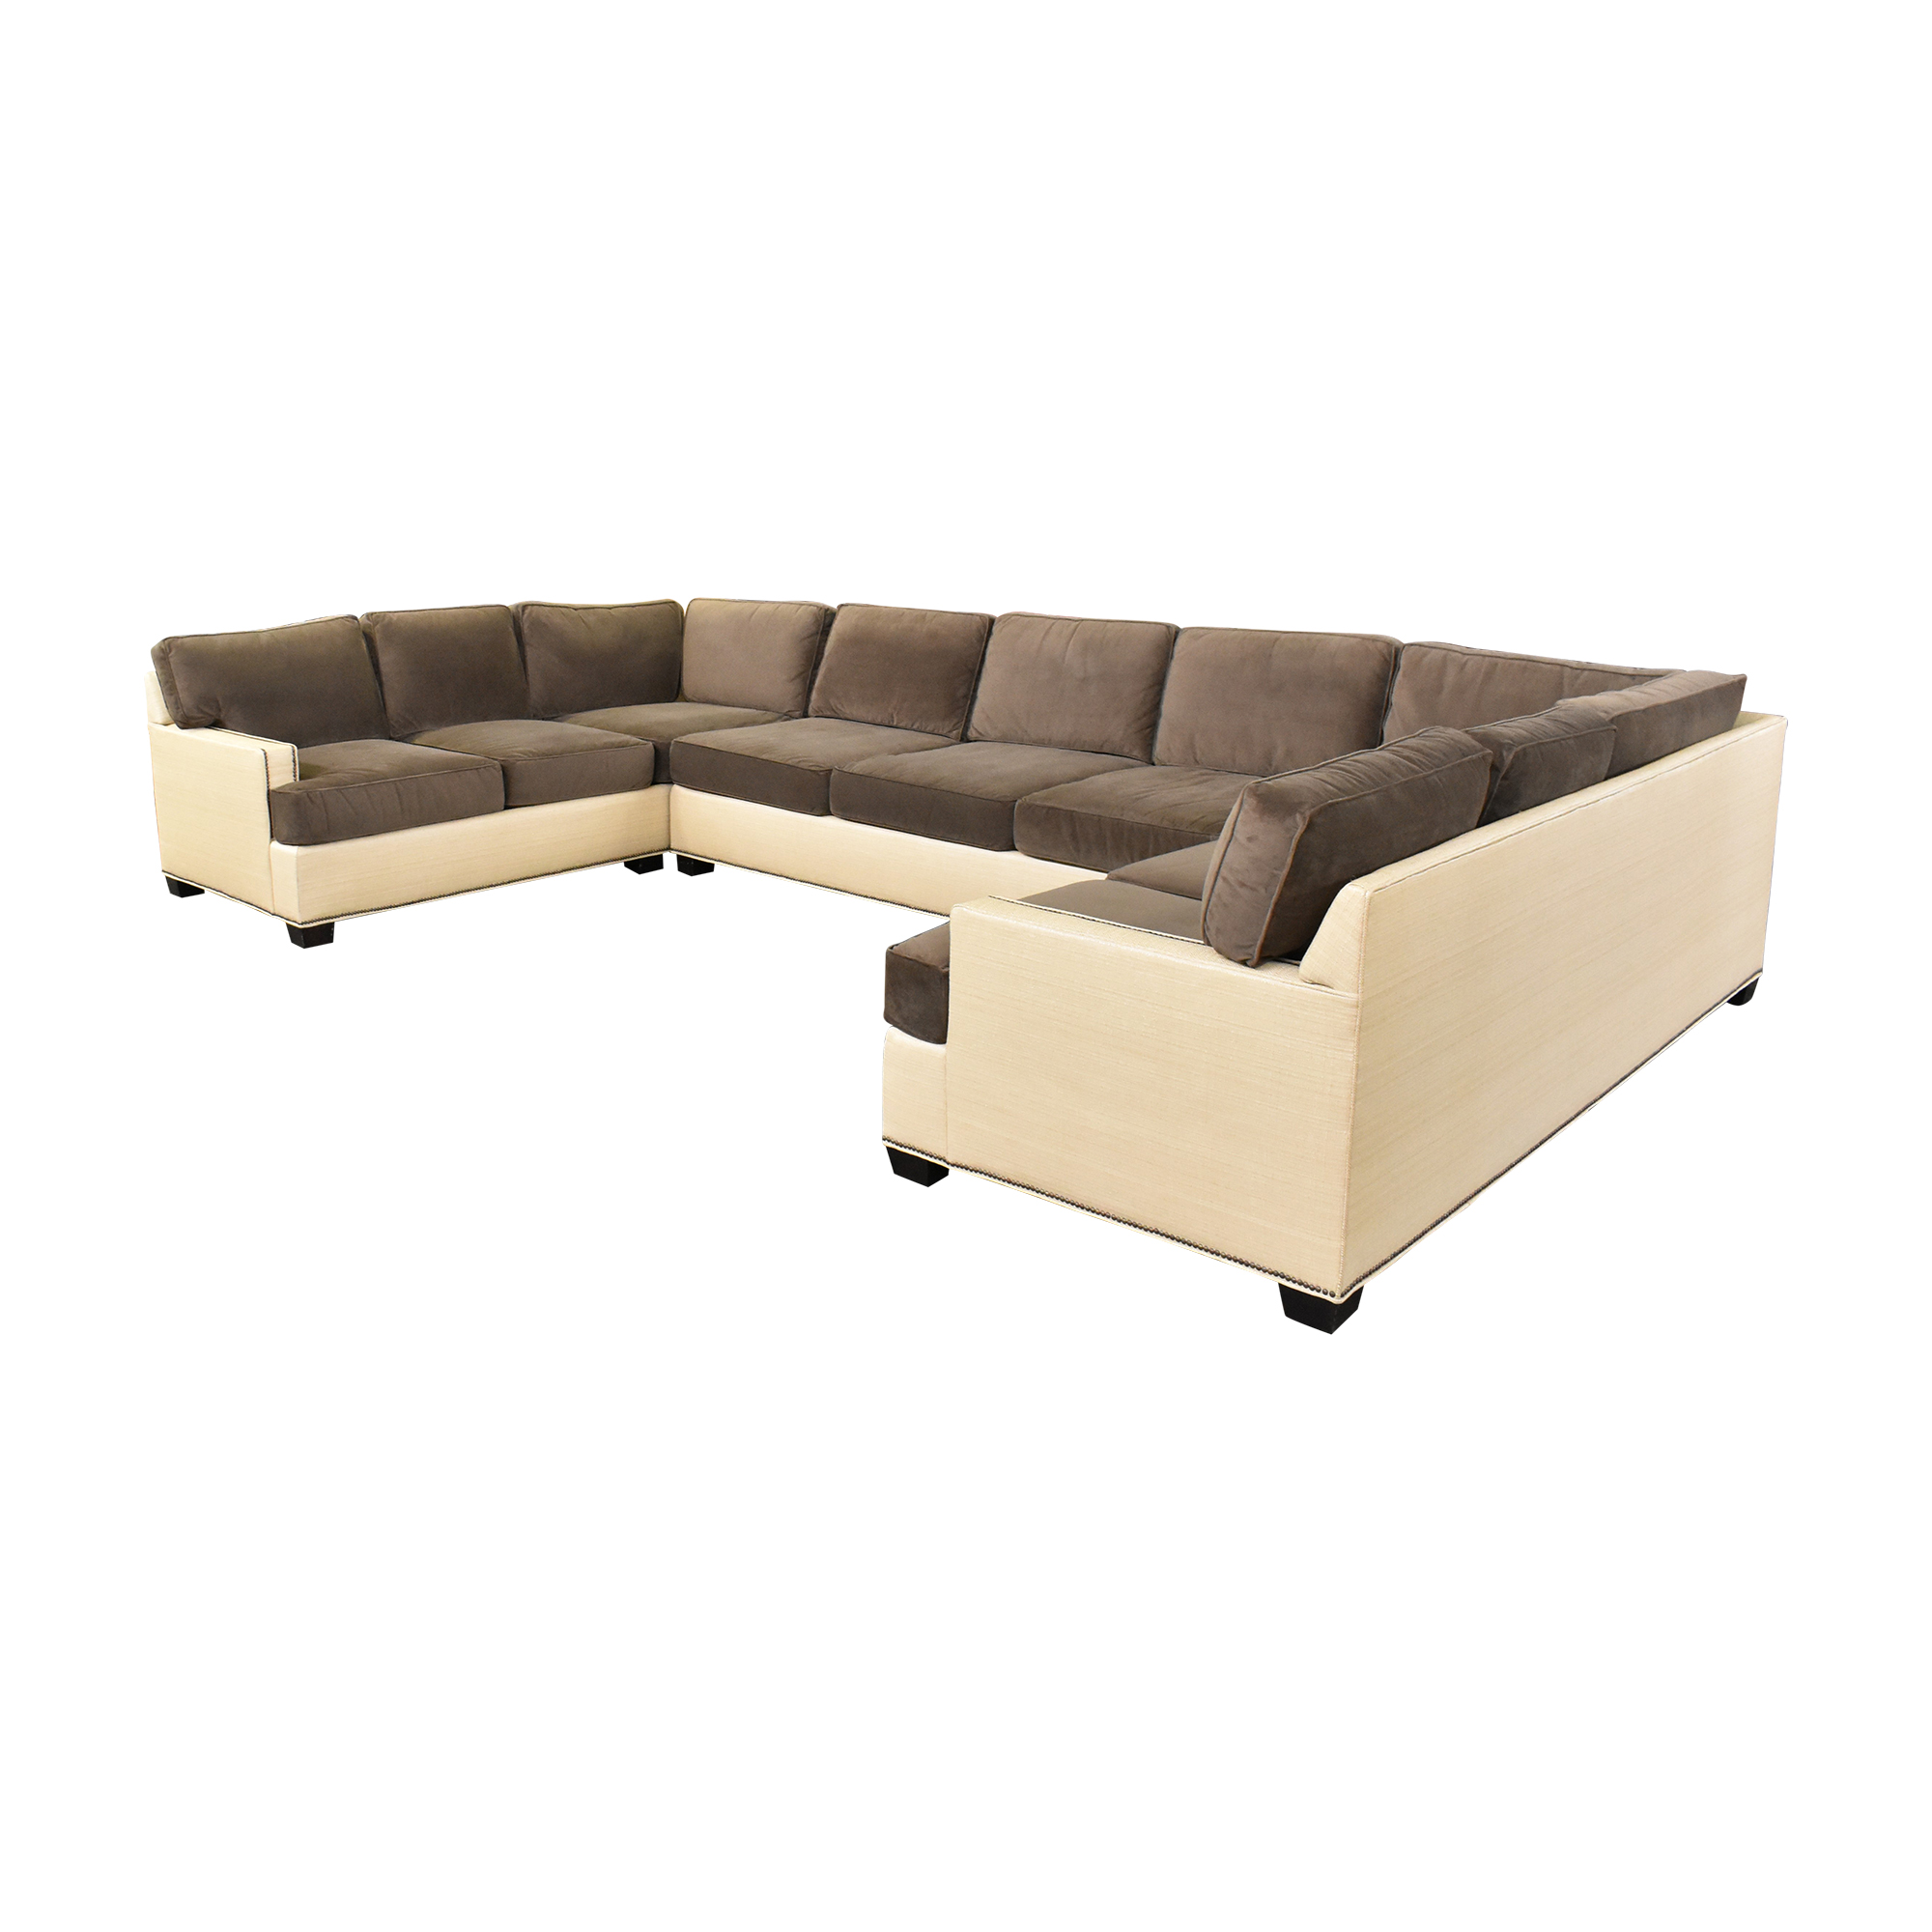 Two Tone U Sectional with Ottoman sale